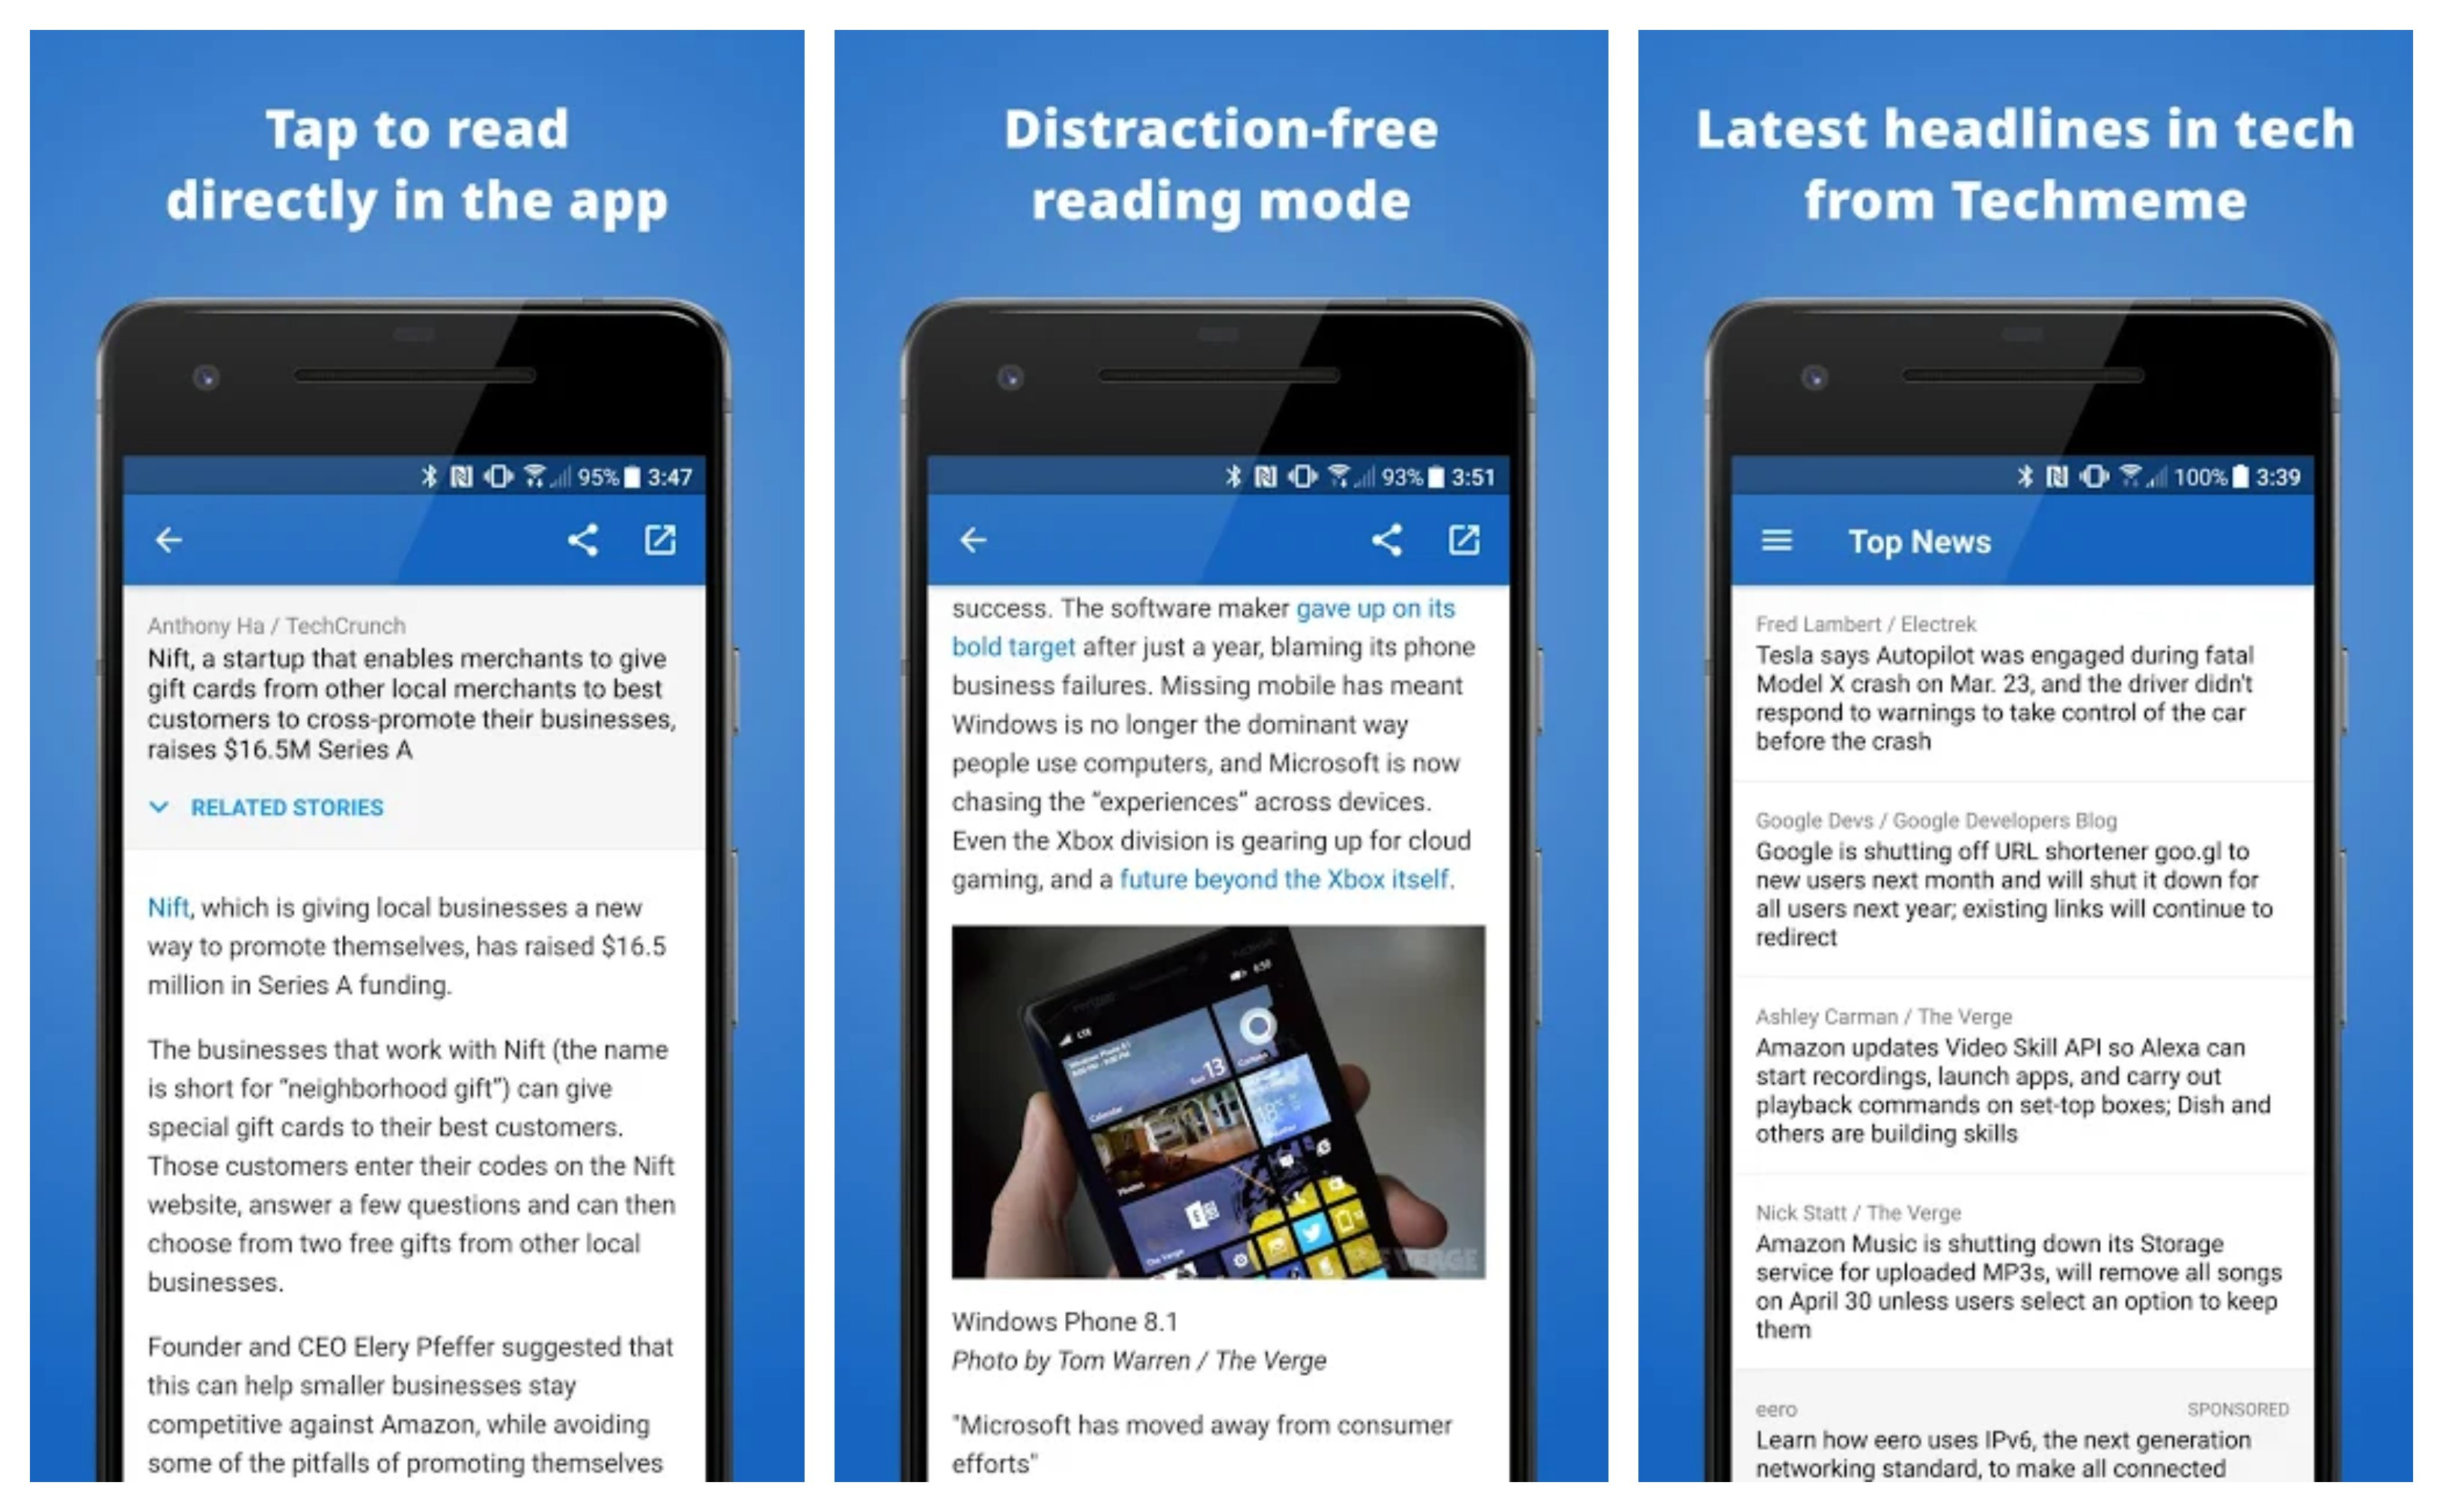 Techmeme Best technology news apps for android